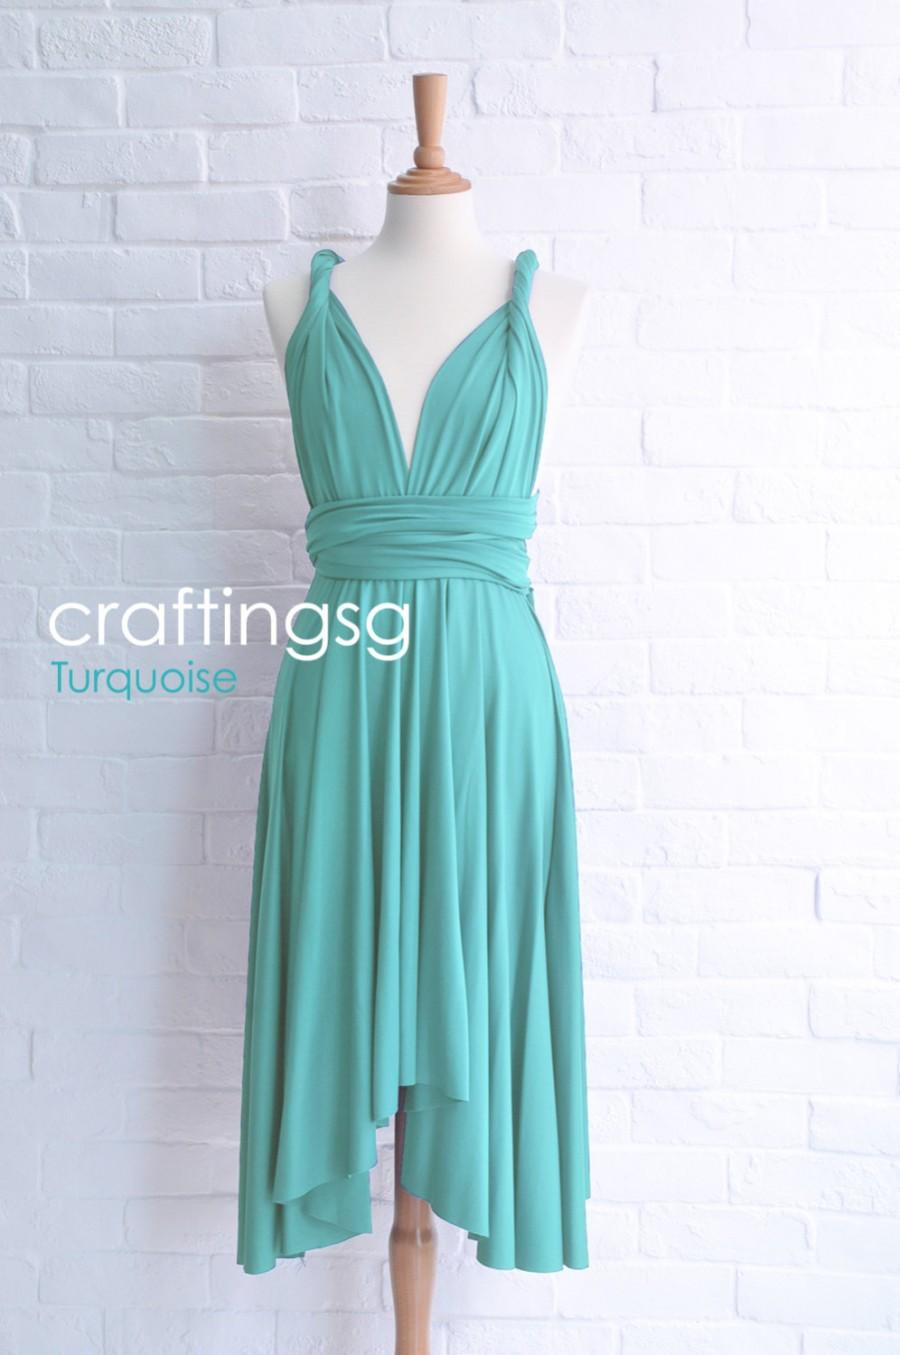 Hochzeit - Bridesmaid Dress Infinity Dress Turquoise Knee Length Wrap Convertible Dress Wedding Dress